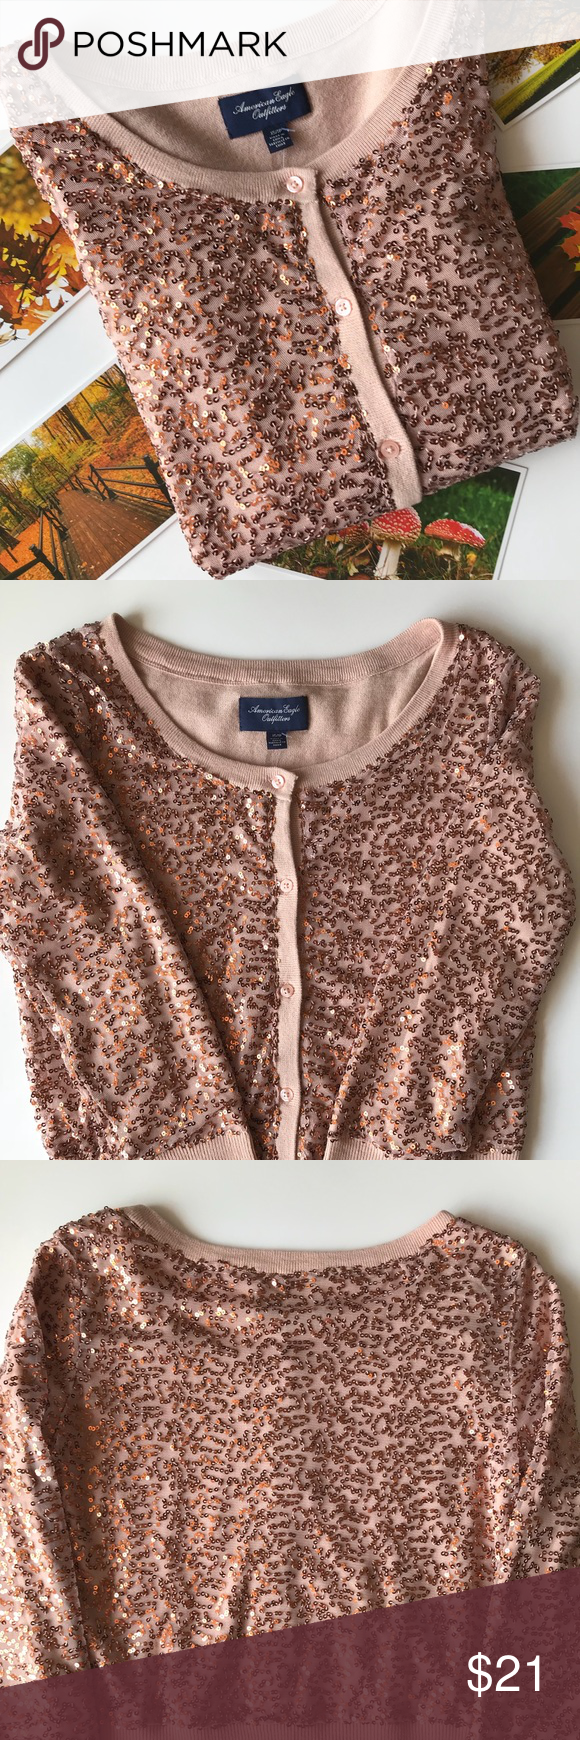 American Eagle: Rose gold sequin cardigan NWT | American eagle ...